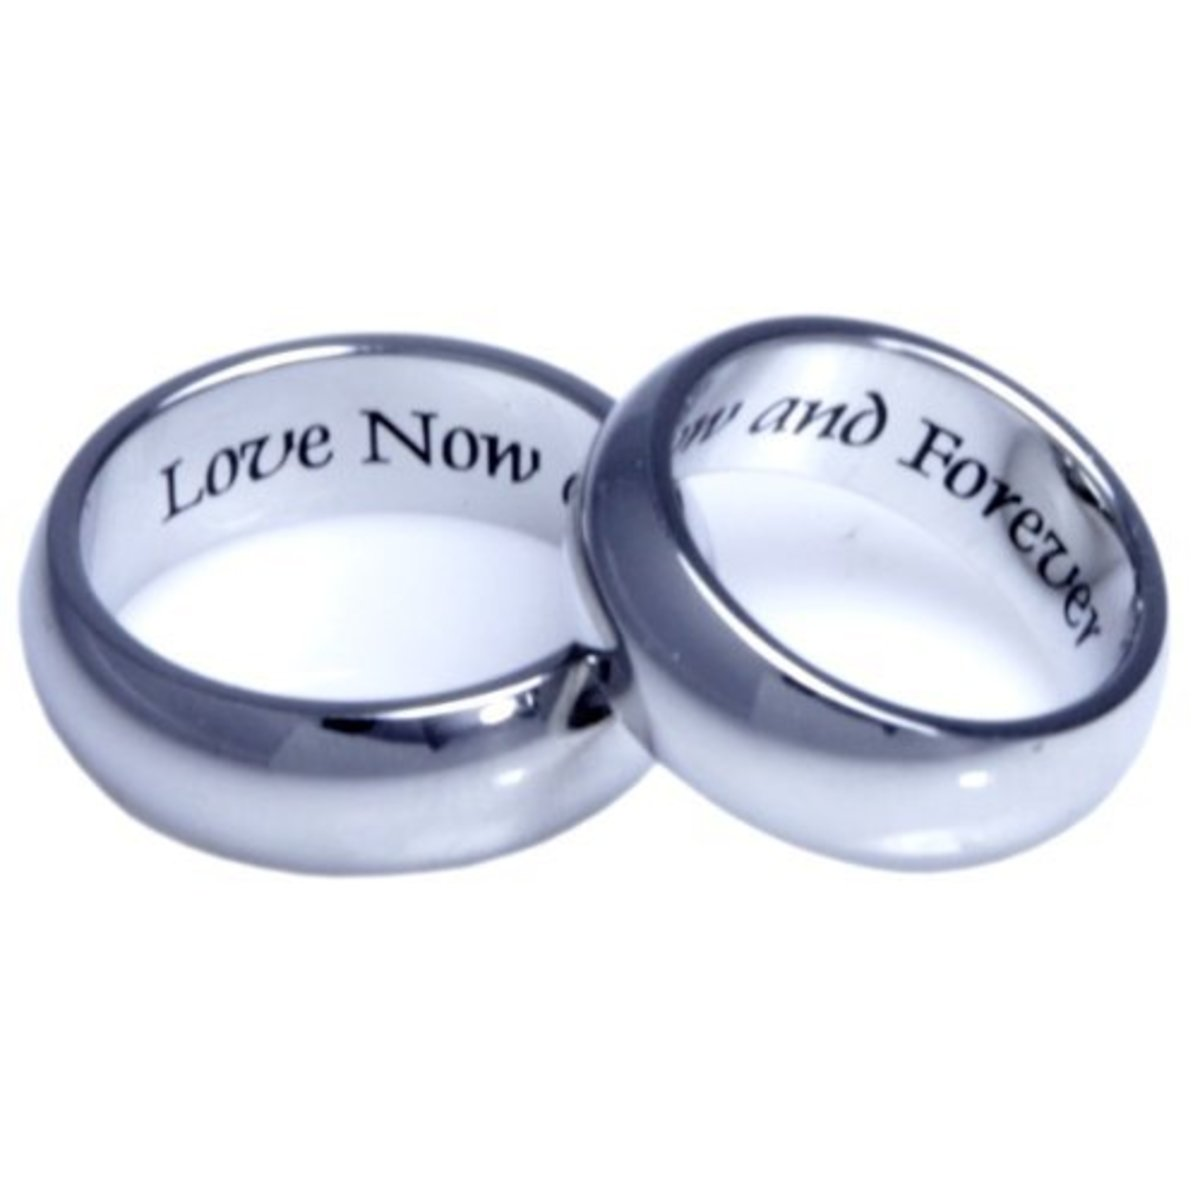 what does a promise ring